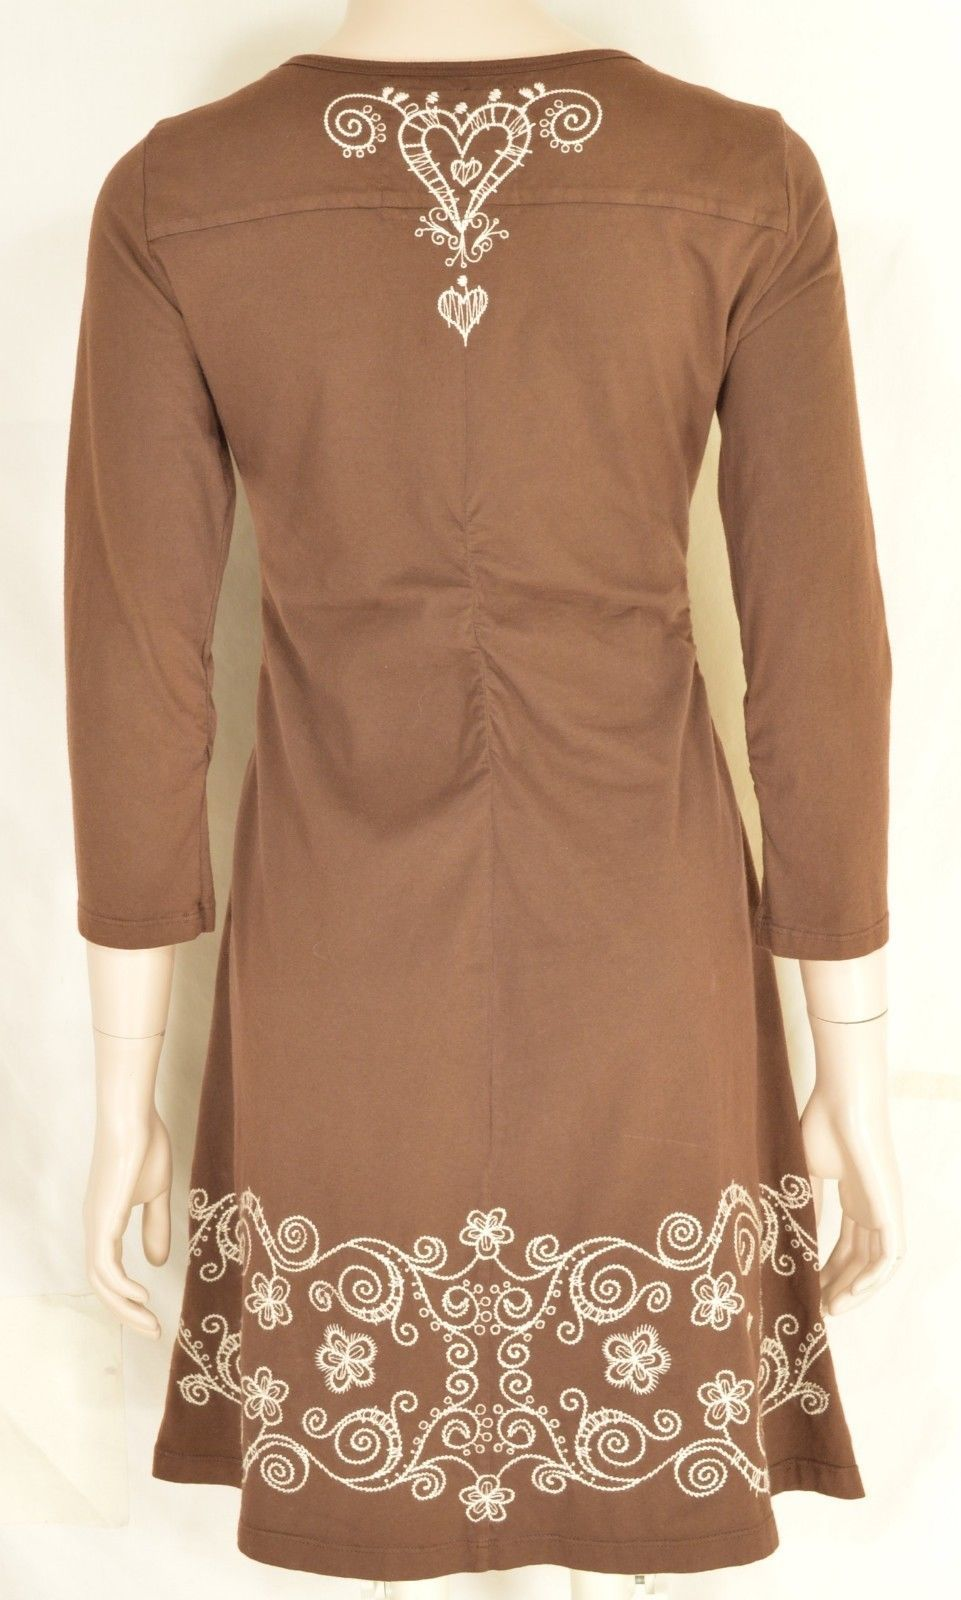 Johnny Was dress mini SZ S brown white embroidery 3/4 ruched sleeve ruched back